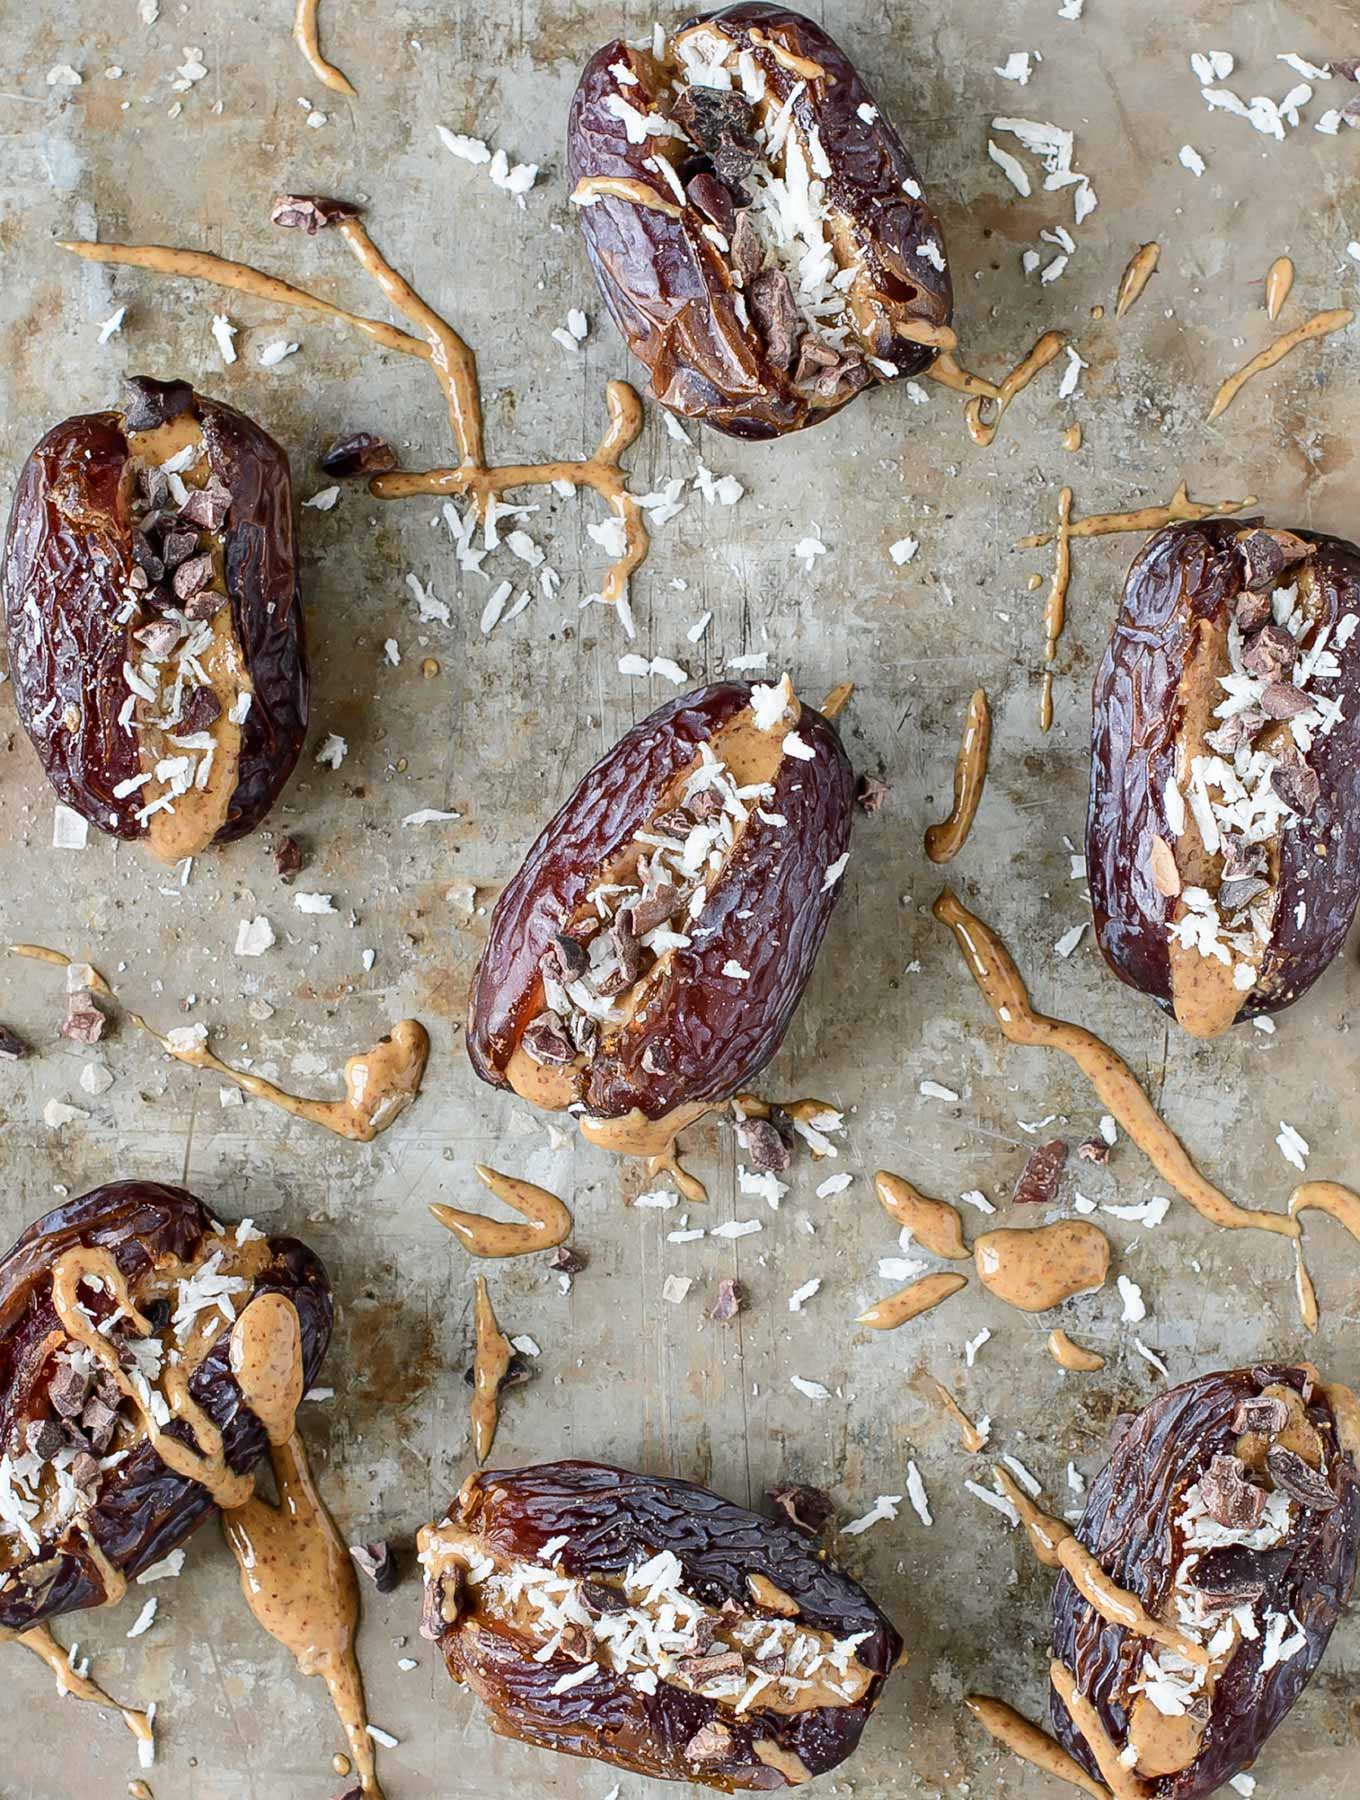 Dates stuffed with almond butter, coconut, cacao nibs and smoked salt.